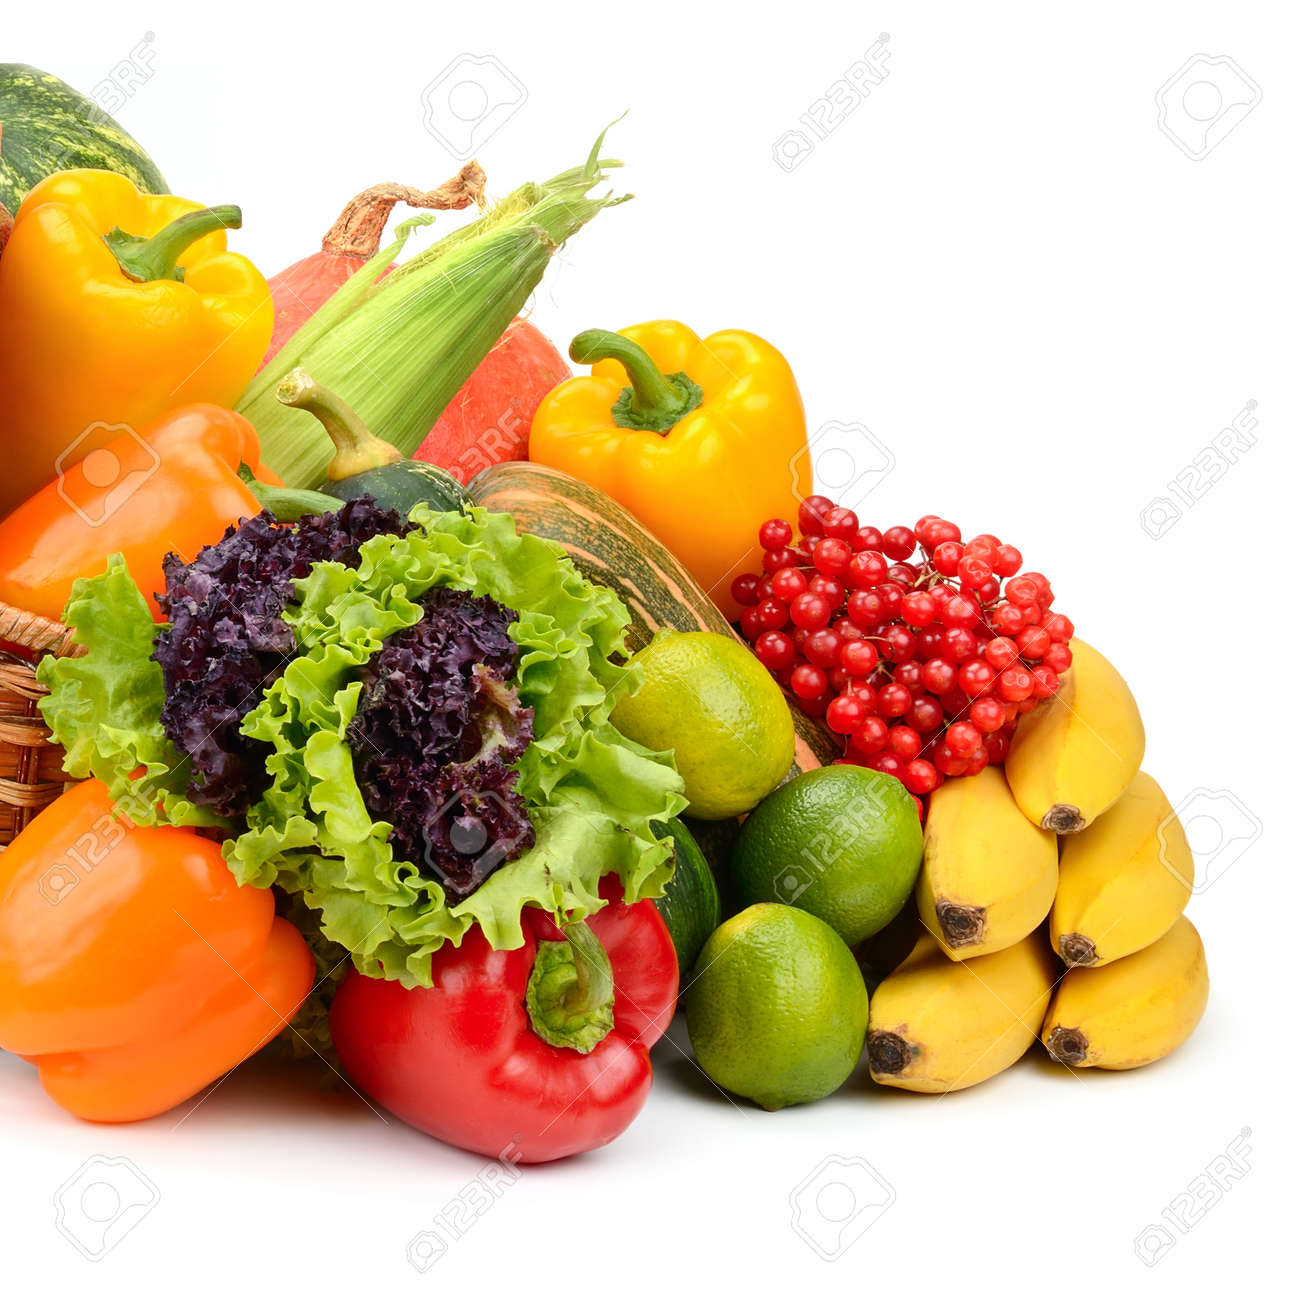 composition of fruits and vegetables in basket on white - 44303018